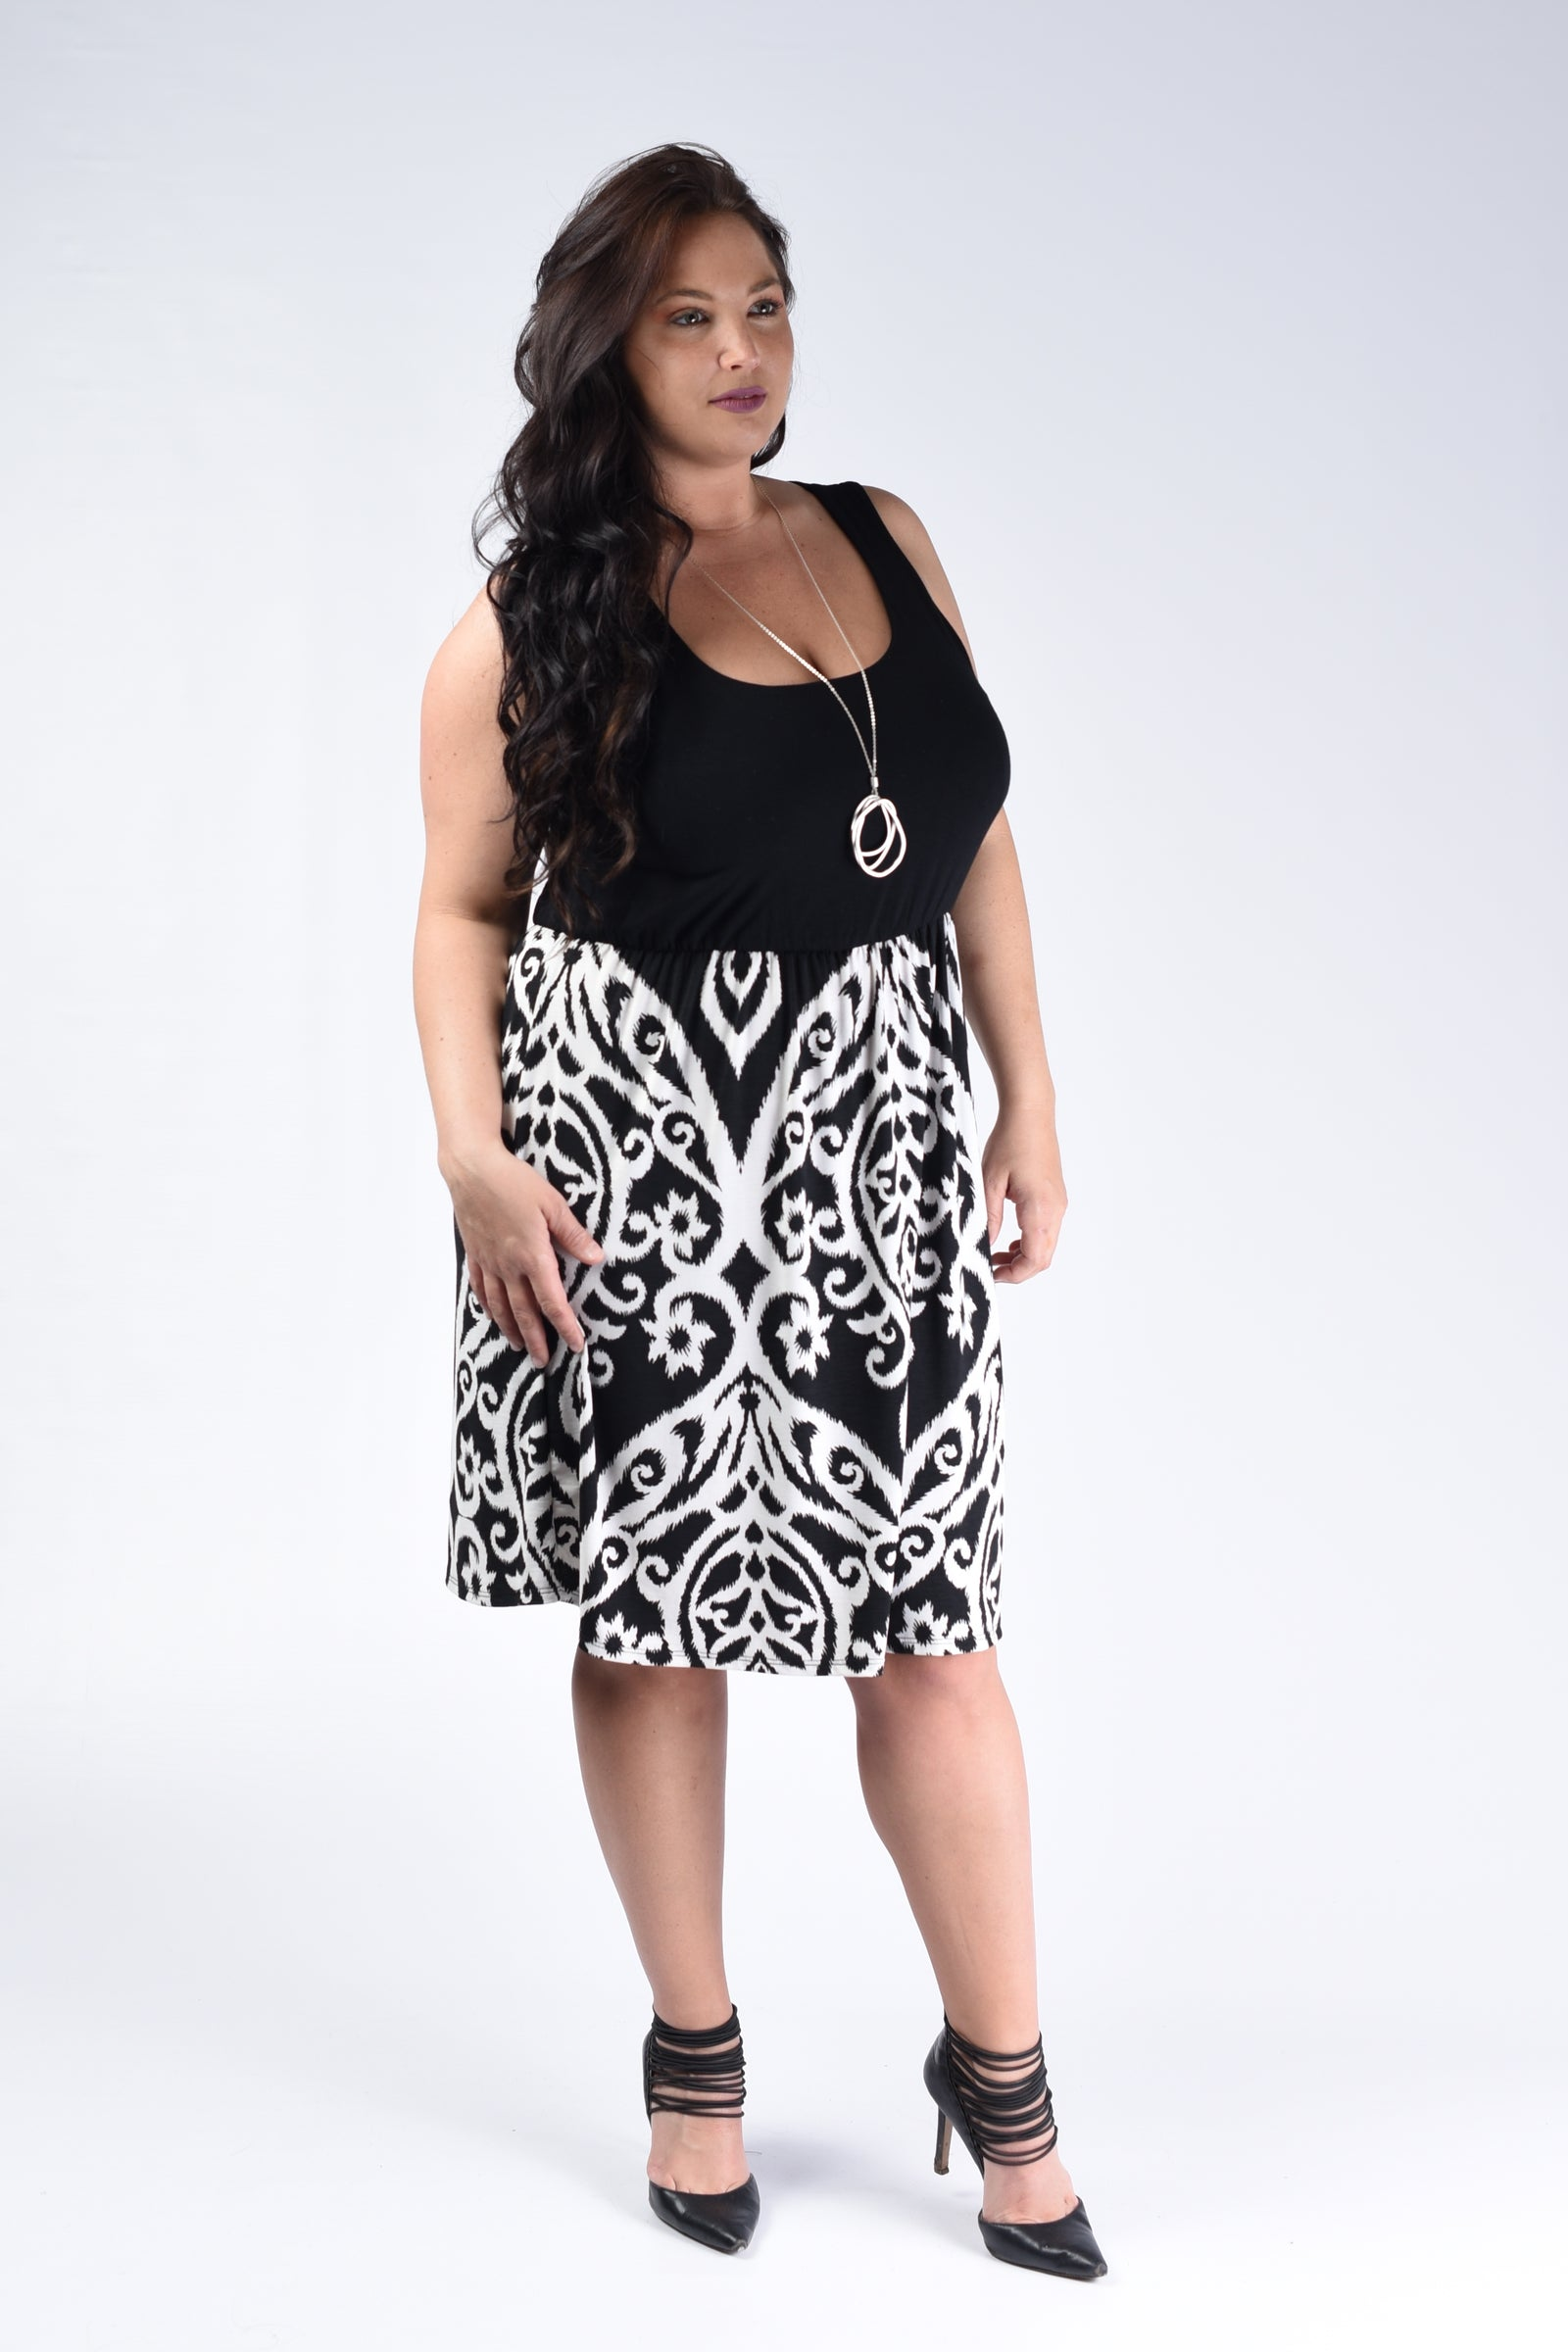 Black & White Damask Tank Dress - www.mycurvystore.com - Curvy Boutique - Plus Size